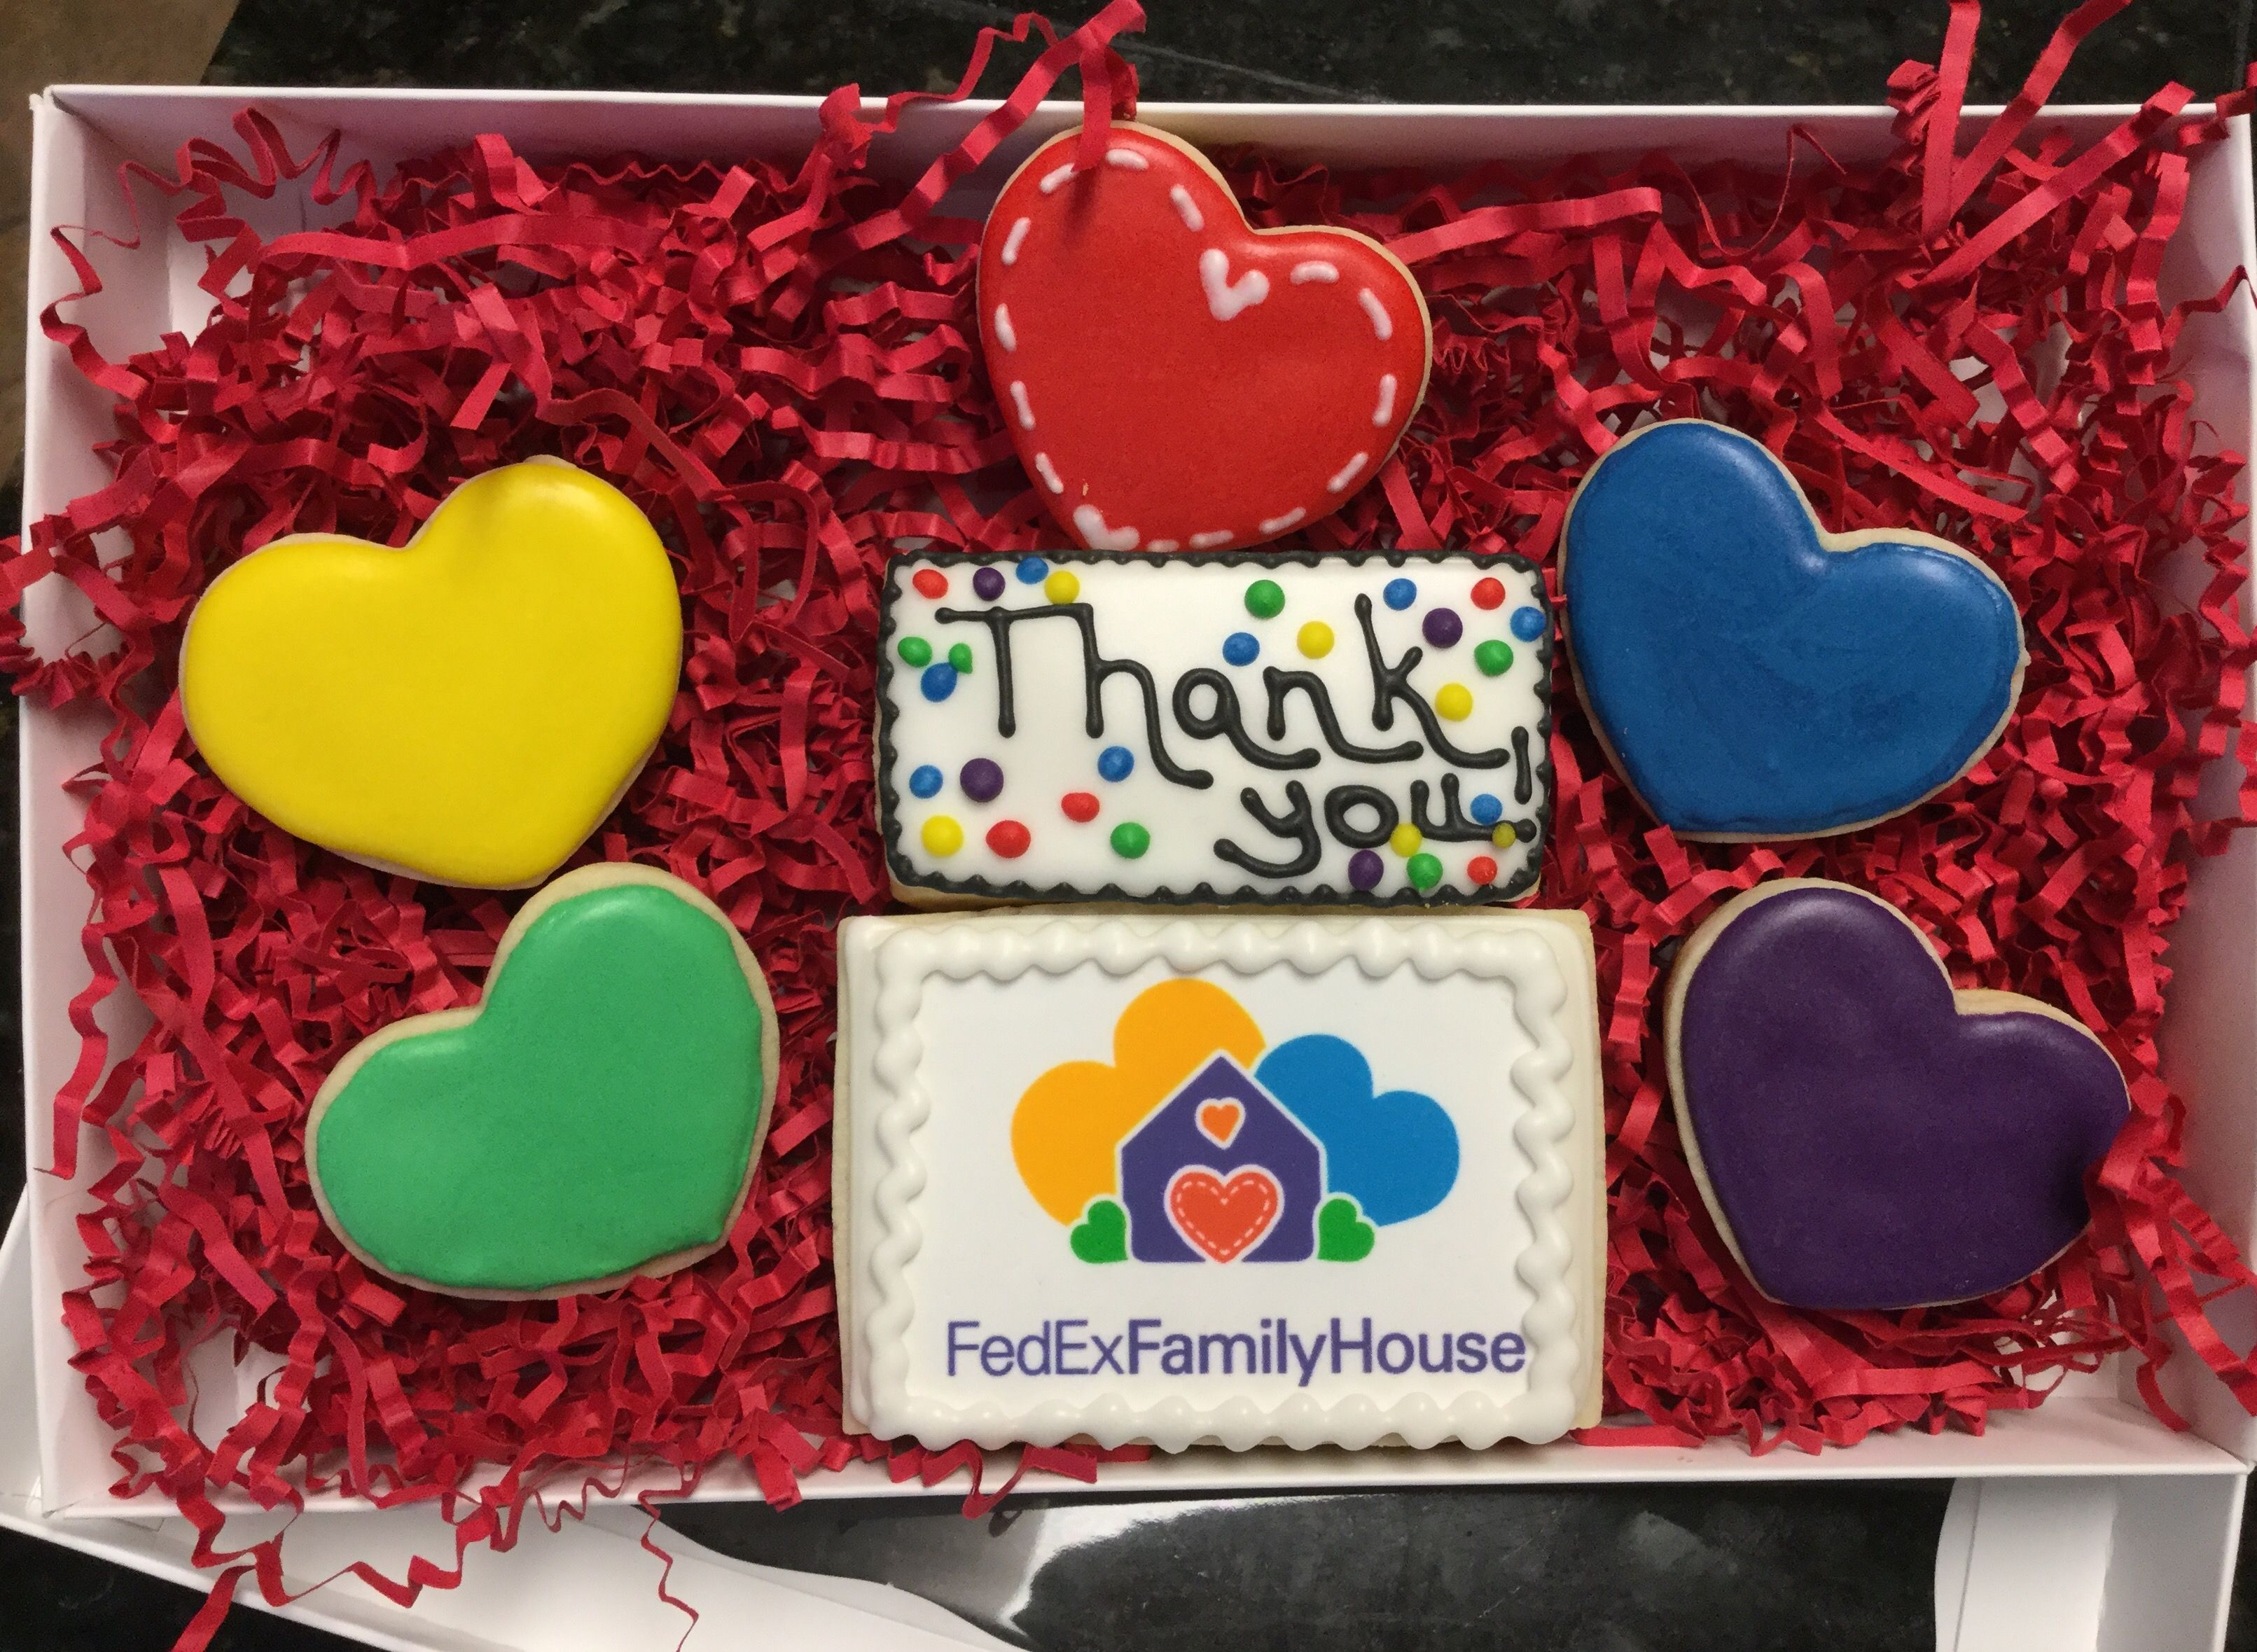 Fedex Family House Thank You Decorated Sugar Cookies By I Am The